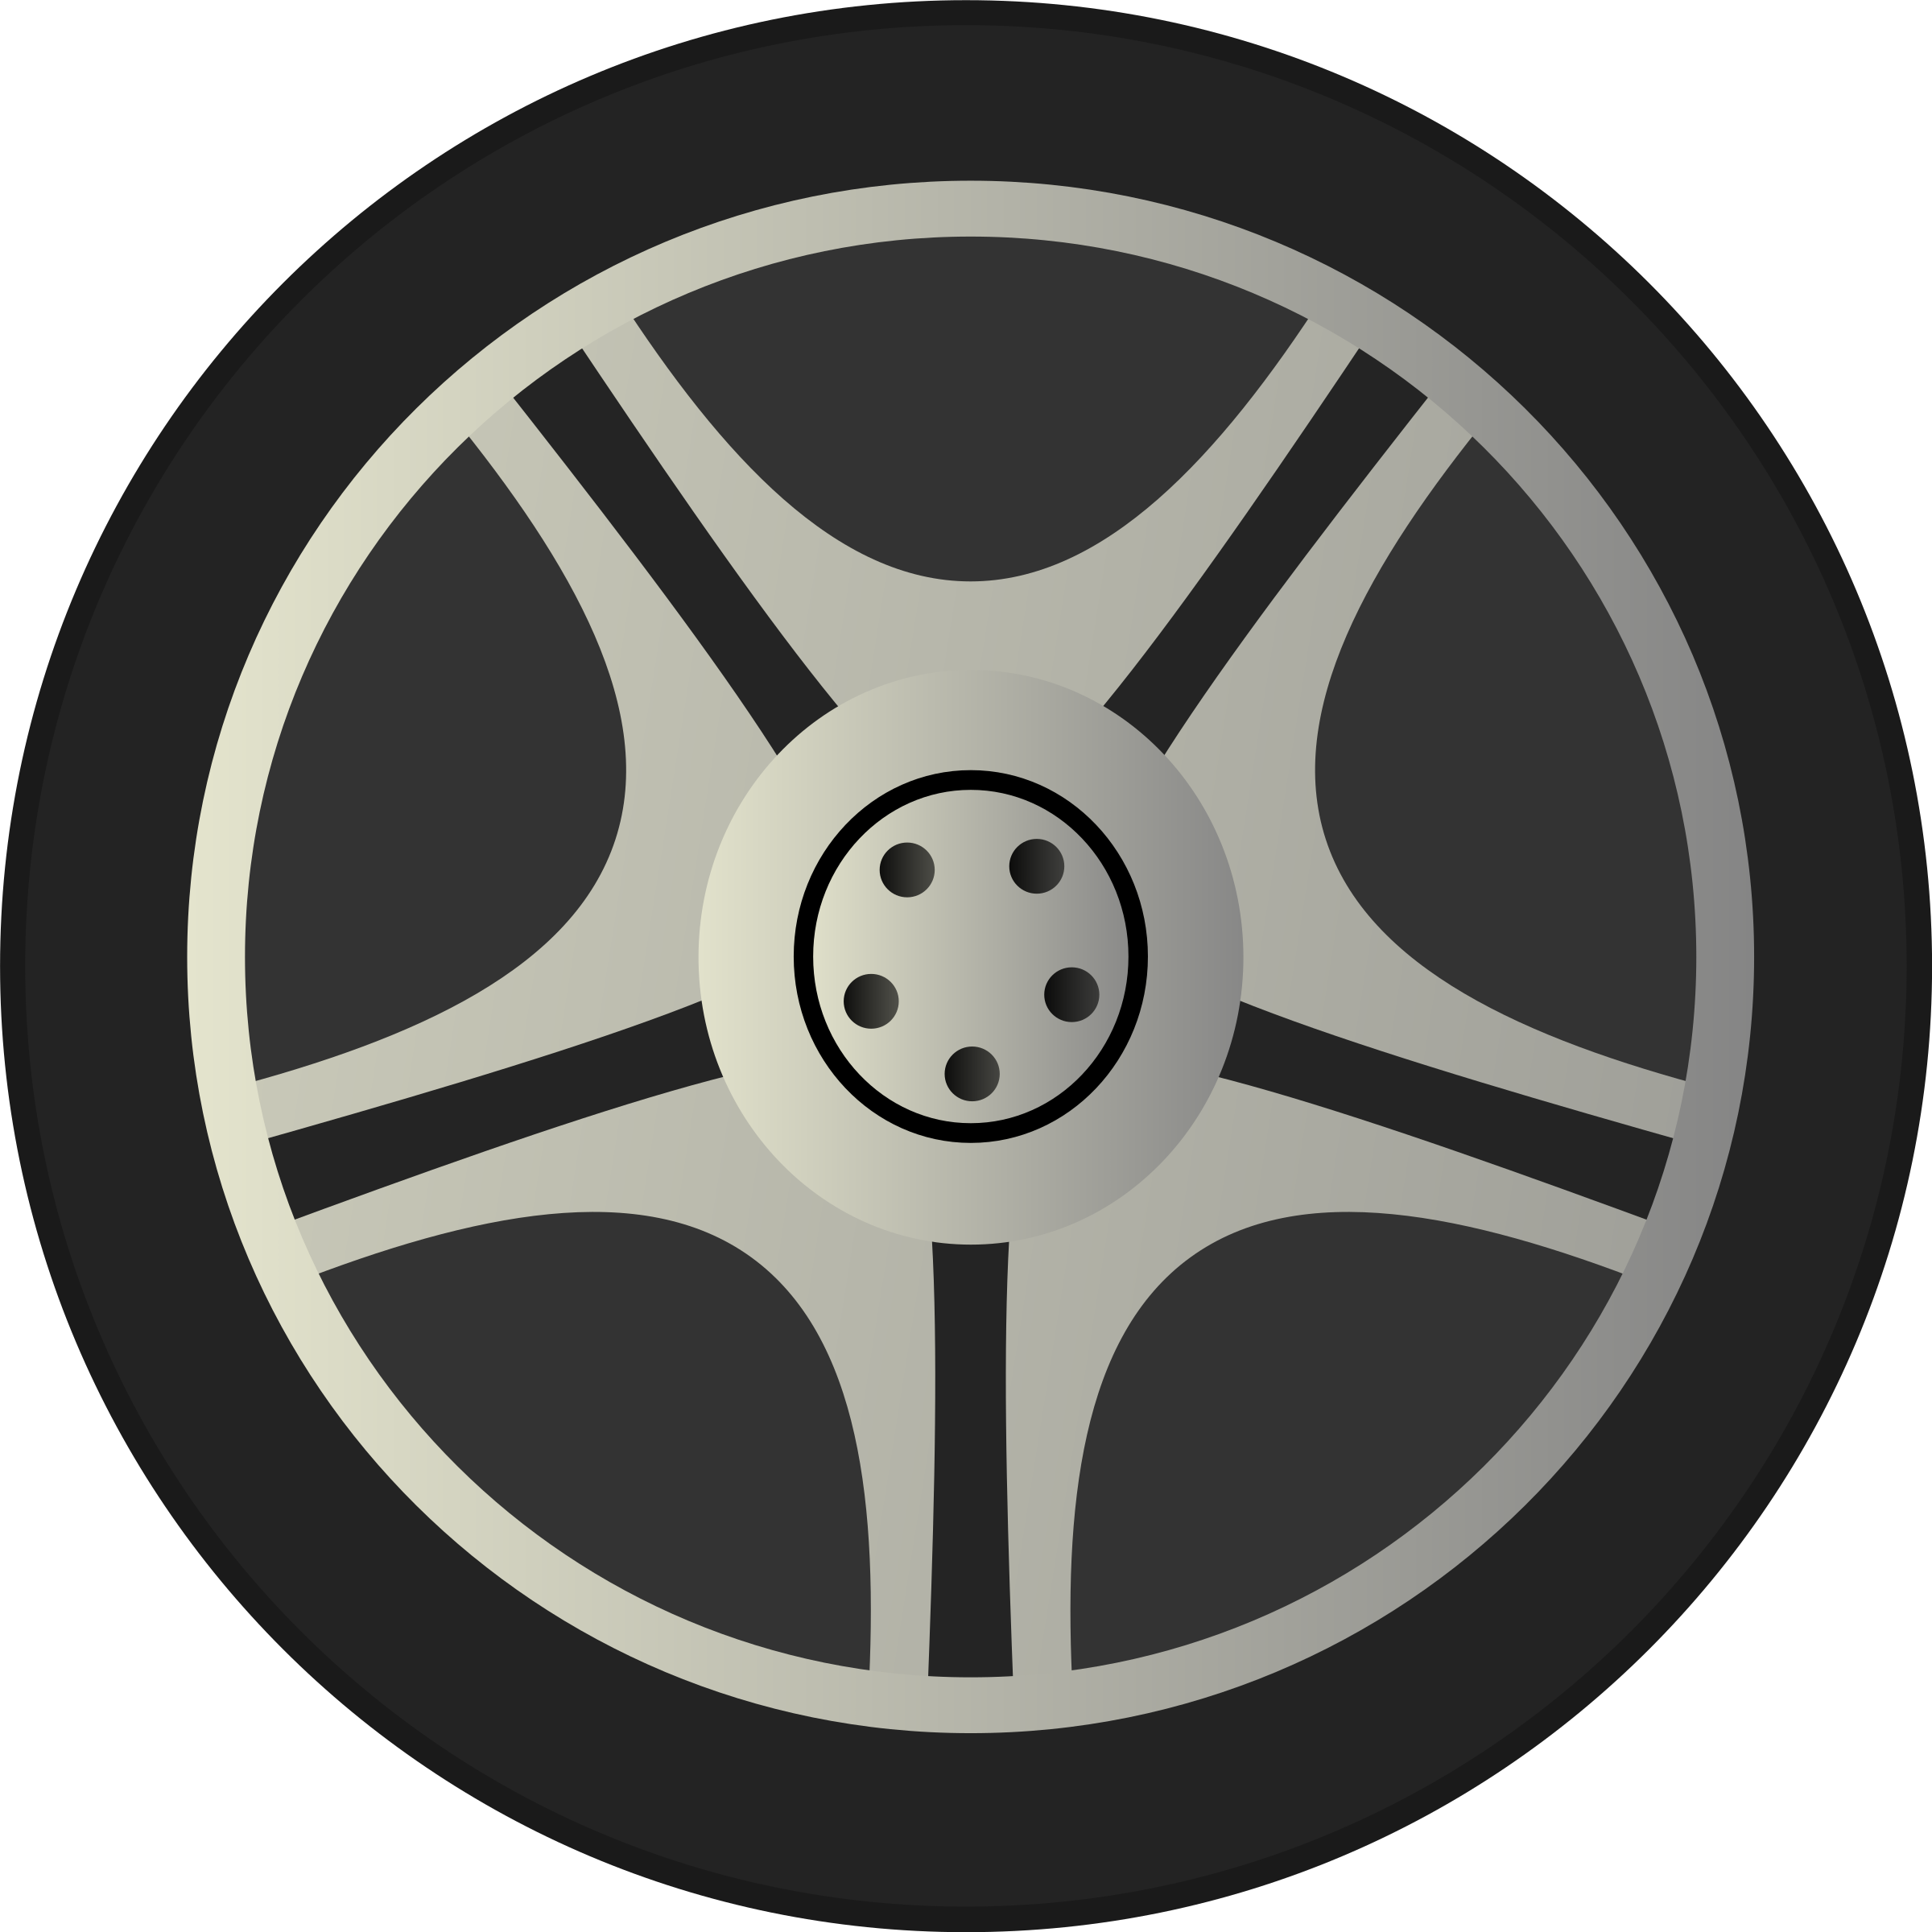 Race car tire clipart graphic library stock 28+ Collection of Car Wheels Clipart | High quality, free cliparts ... graphic library stock